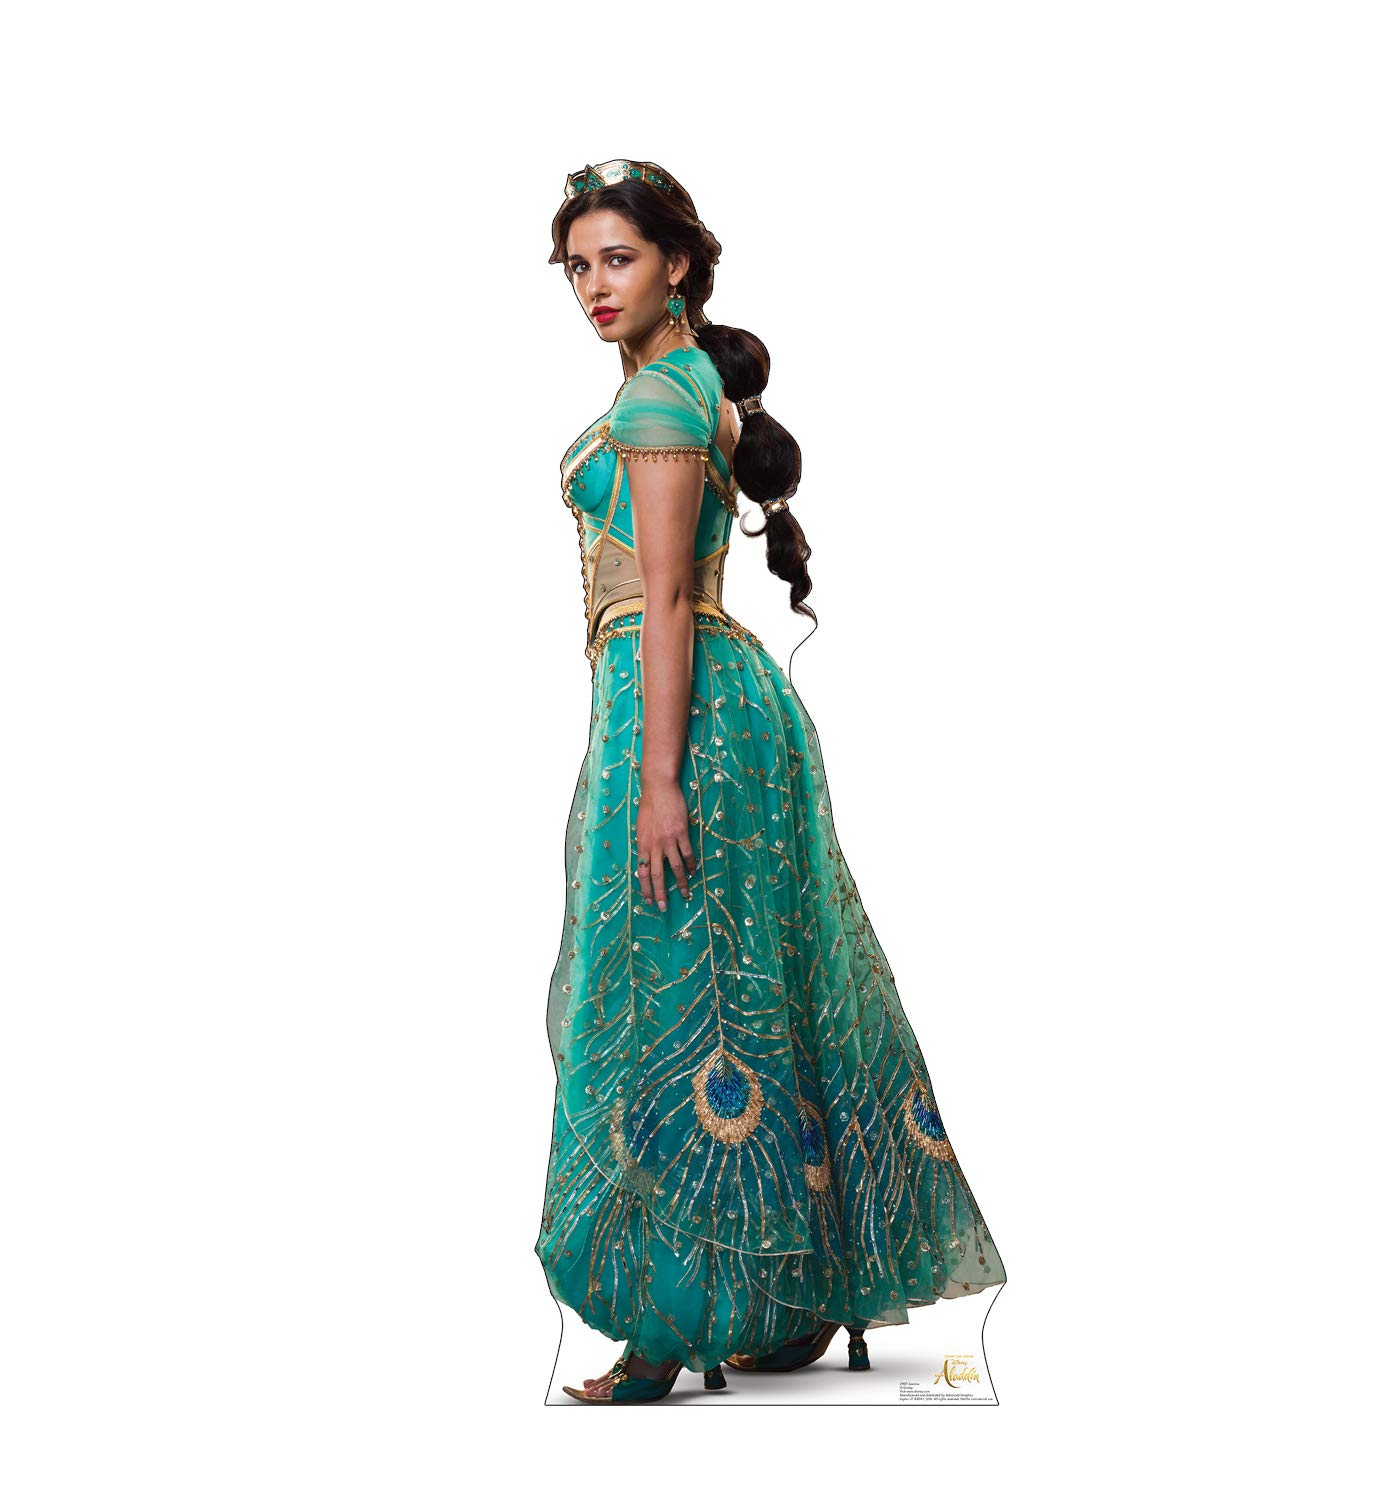 Advanced Graphics Jasmine Life Size Cardboard Cutout Standup - Disney's Aladdin (2019 Live Action Film)